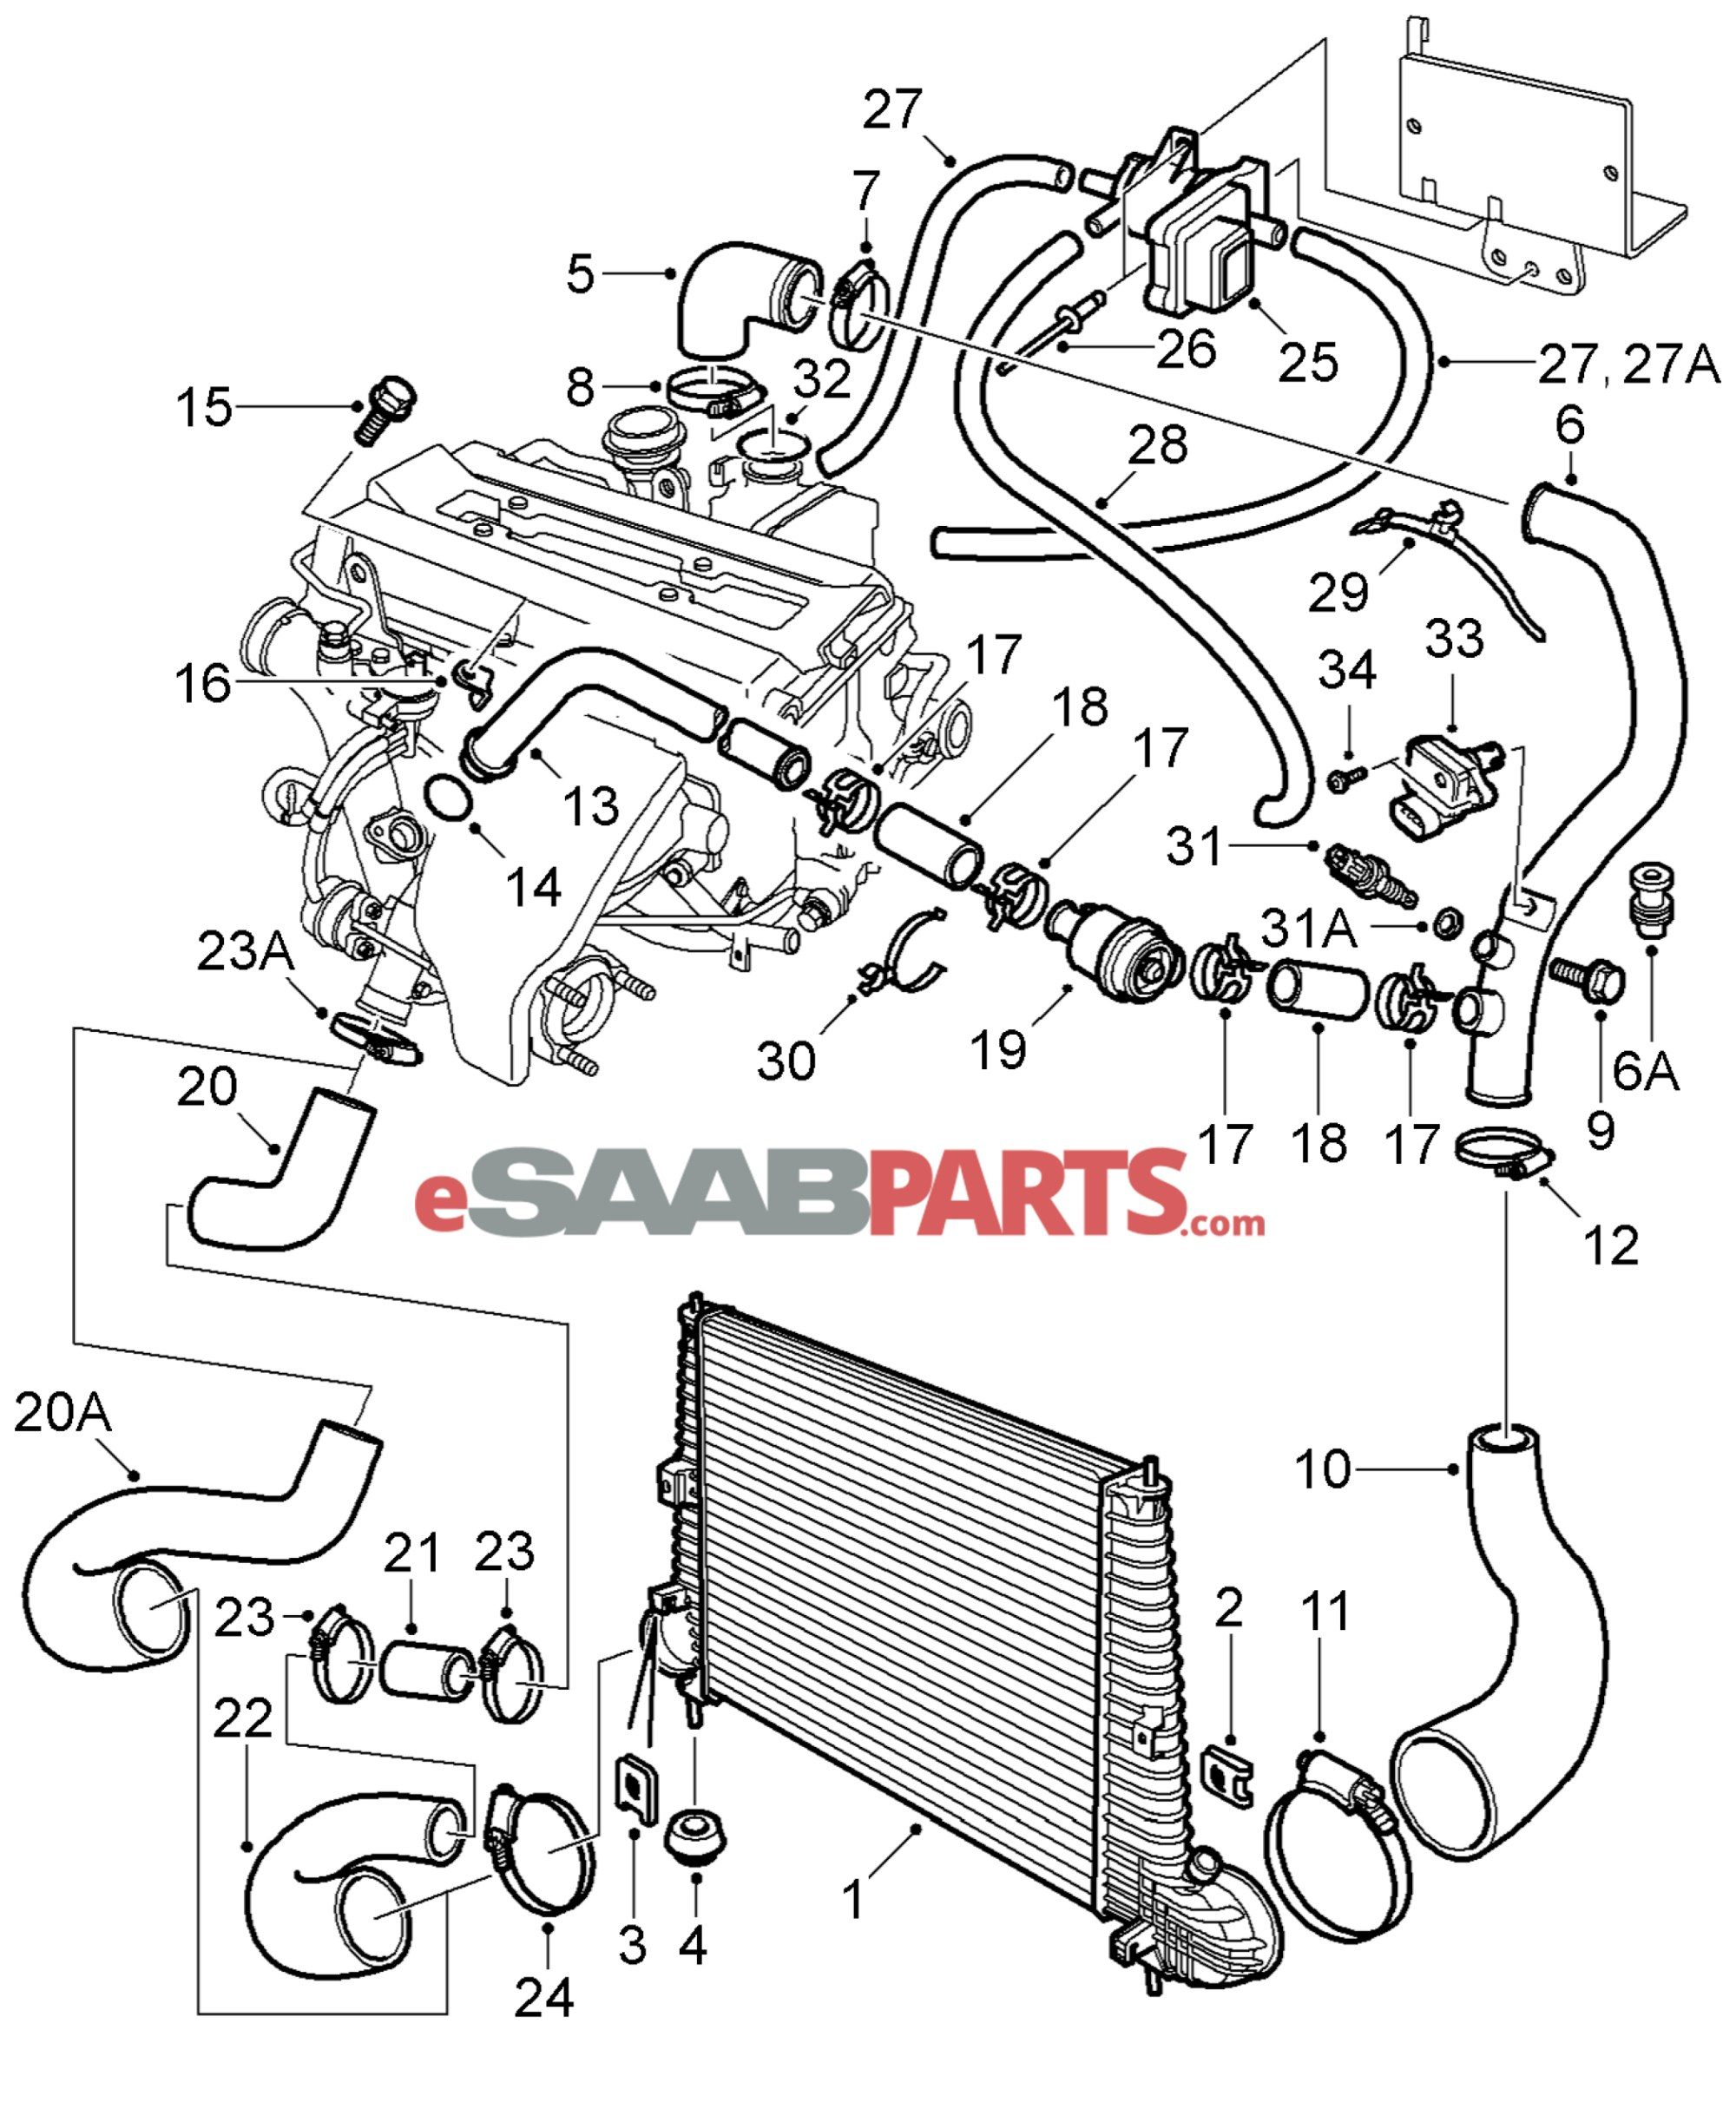 hight resolution of wiring diagram further 2005 saab 9 3 aero vacuum sensor also 2002 5 saab 9 5 engine diagram 2002 saab 9 5 vacuum diagram saab 900